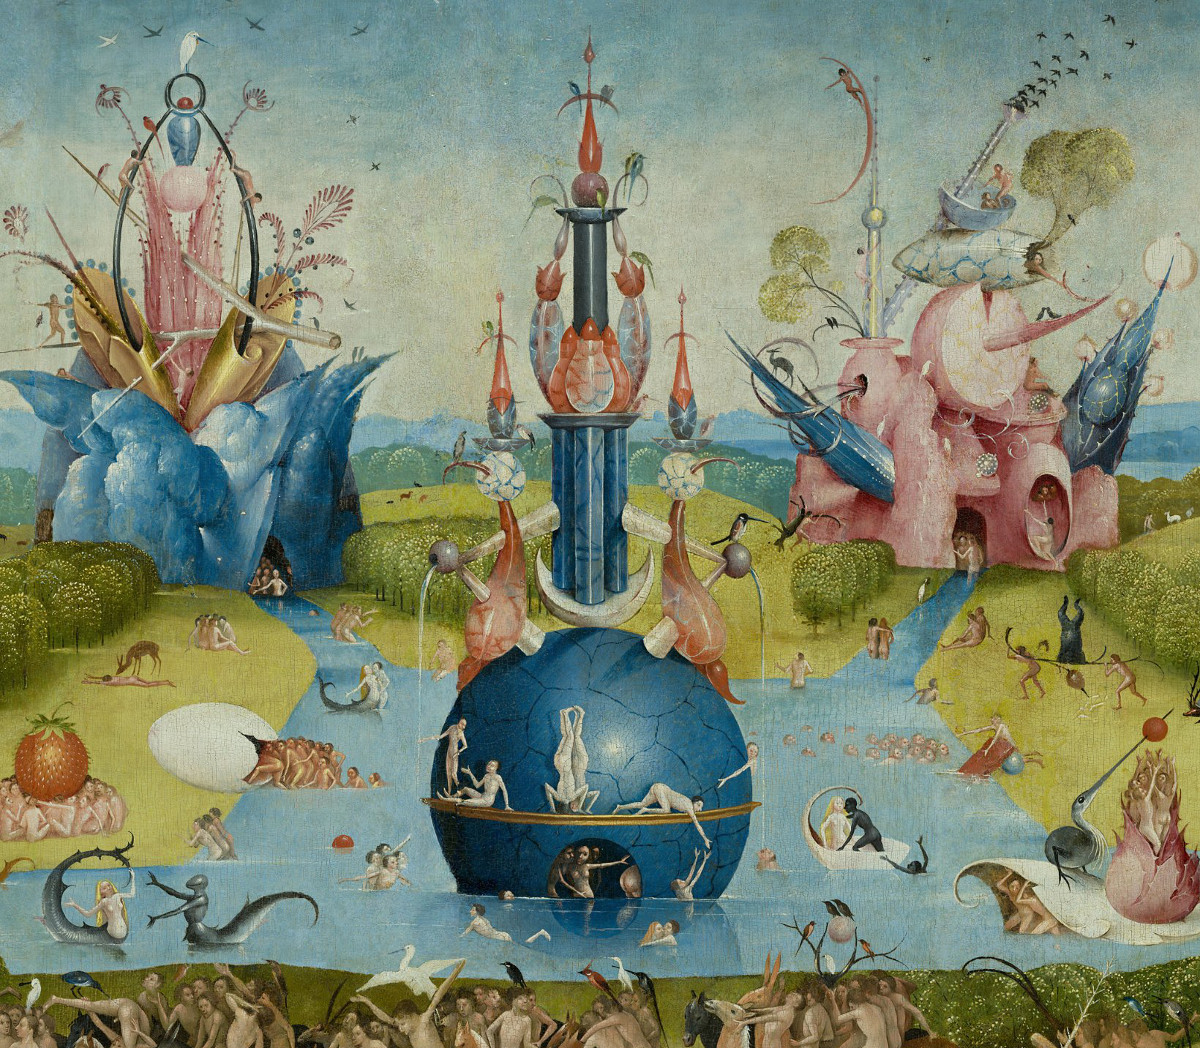 Jheronimus Bosch: Garden of Earthly Delights - central panel (fountain)